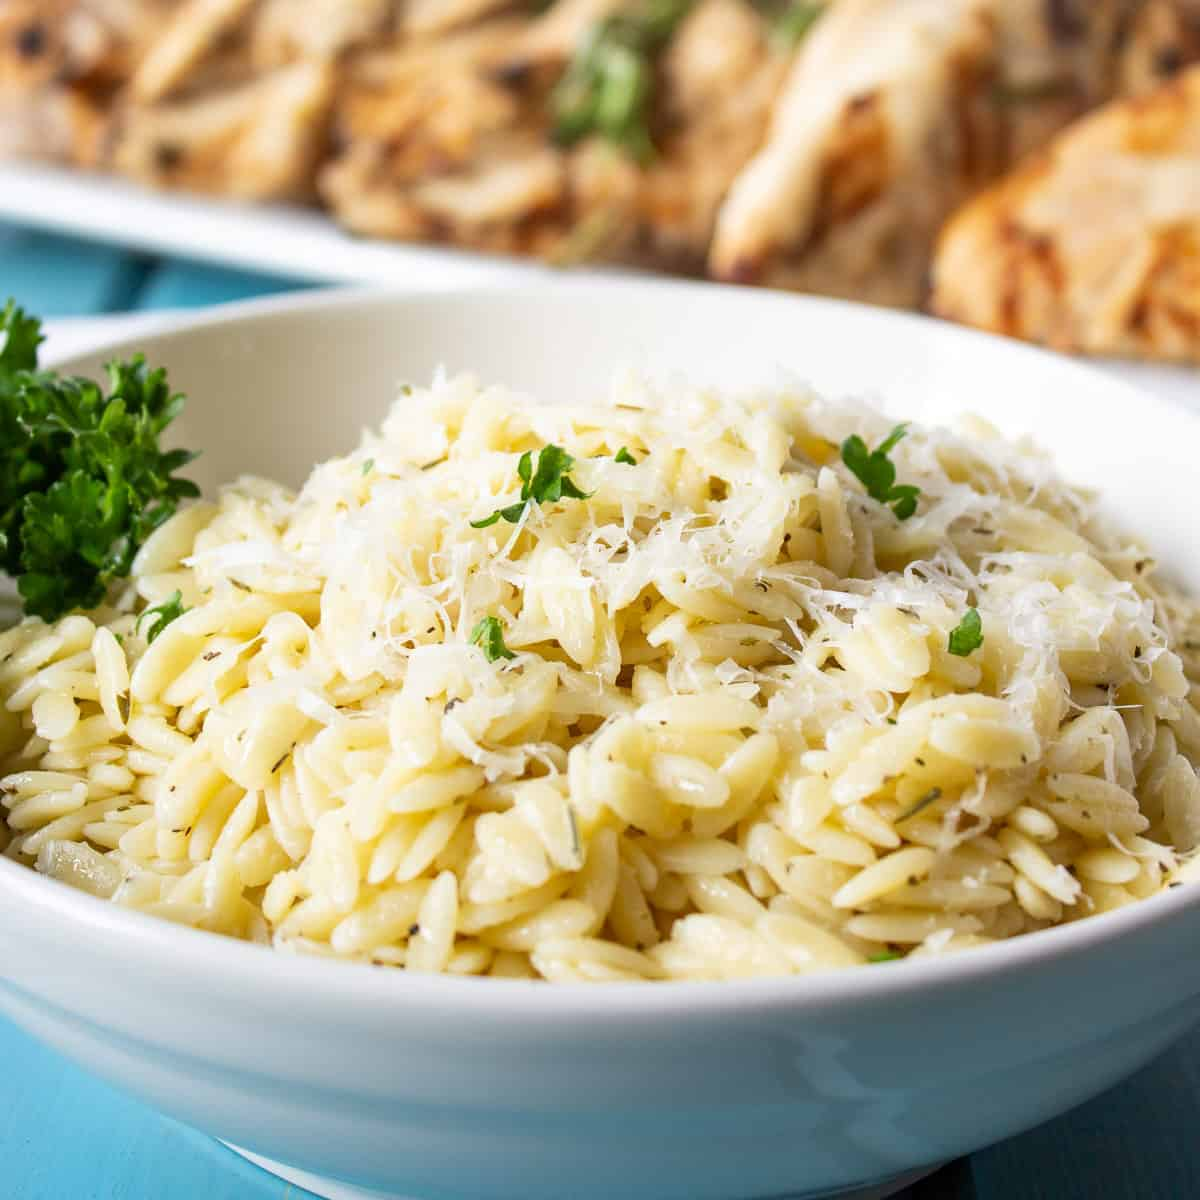 A bowl with orzo pasta topped with fresh green herbs.